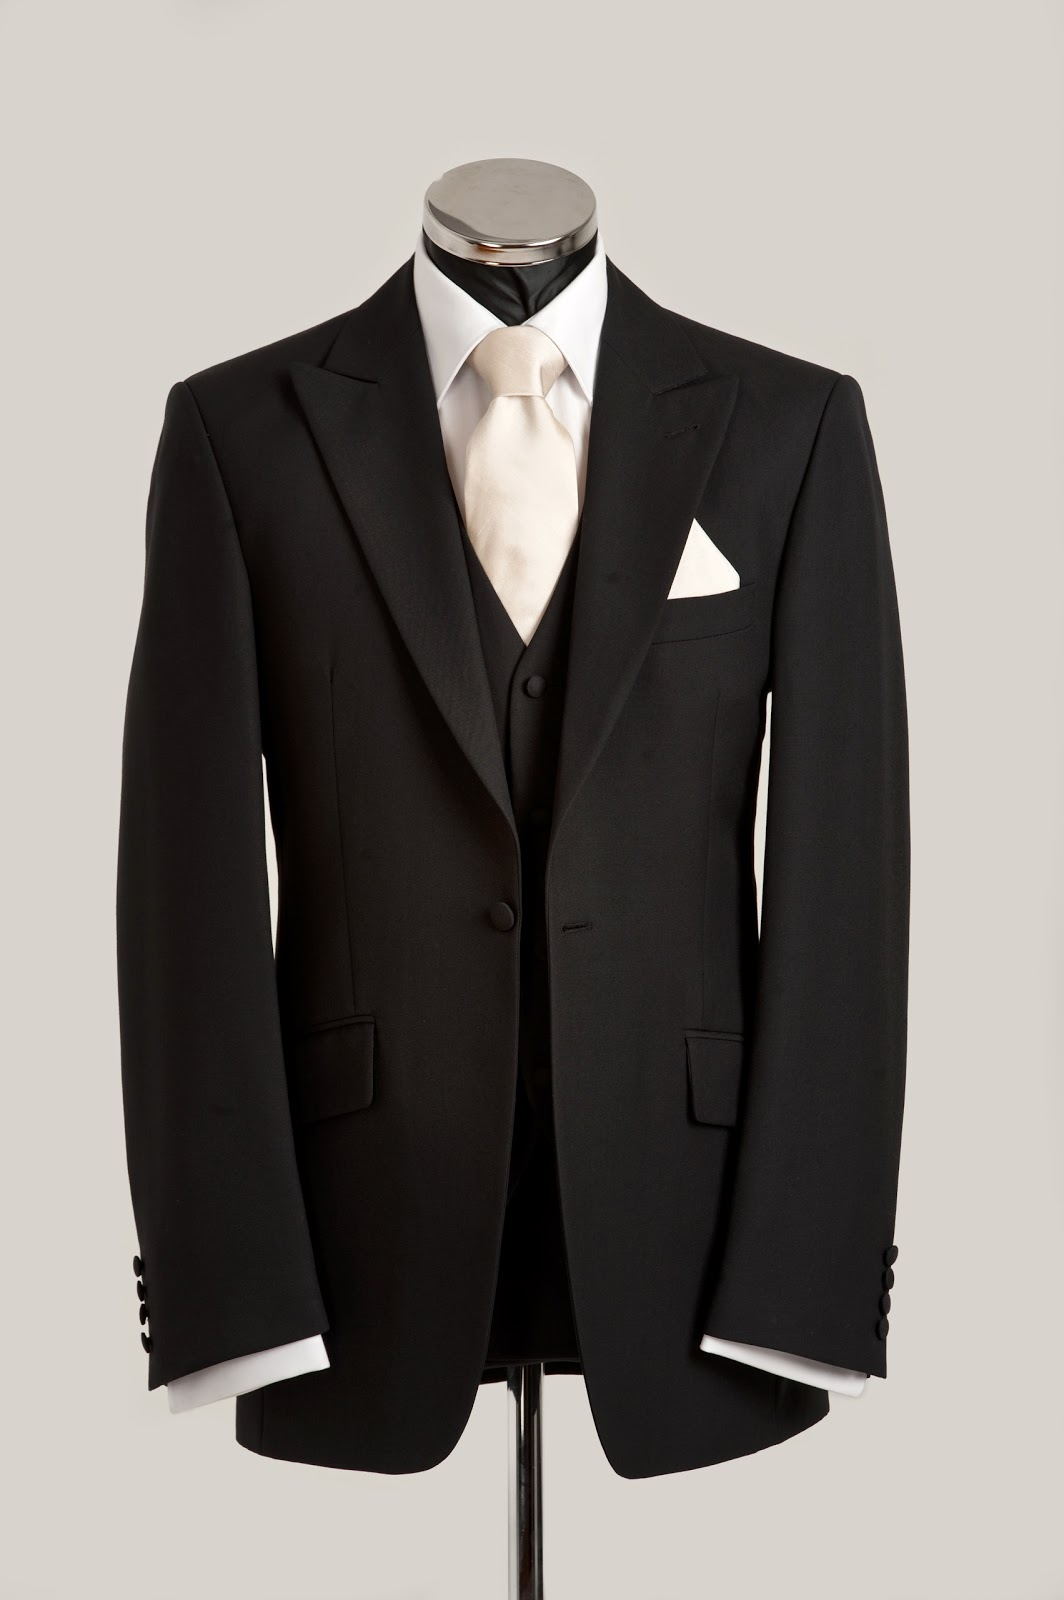 The Bunney Blog: New Wedding Suit Hire Price List for 2013